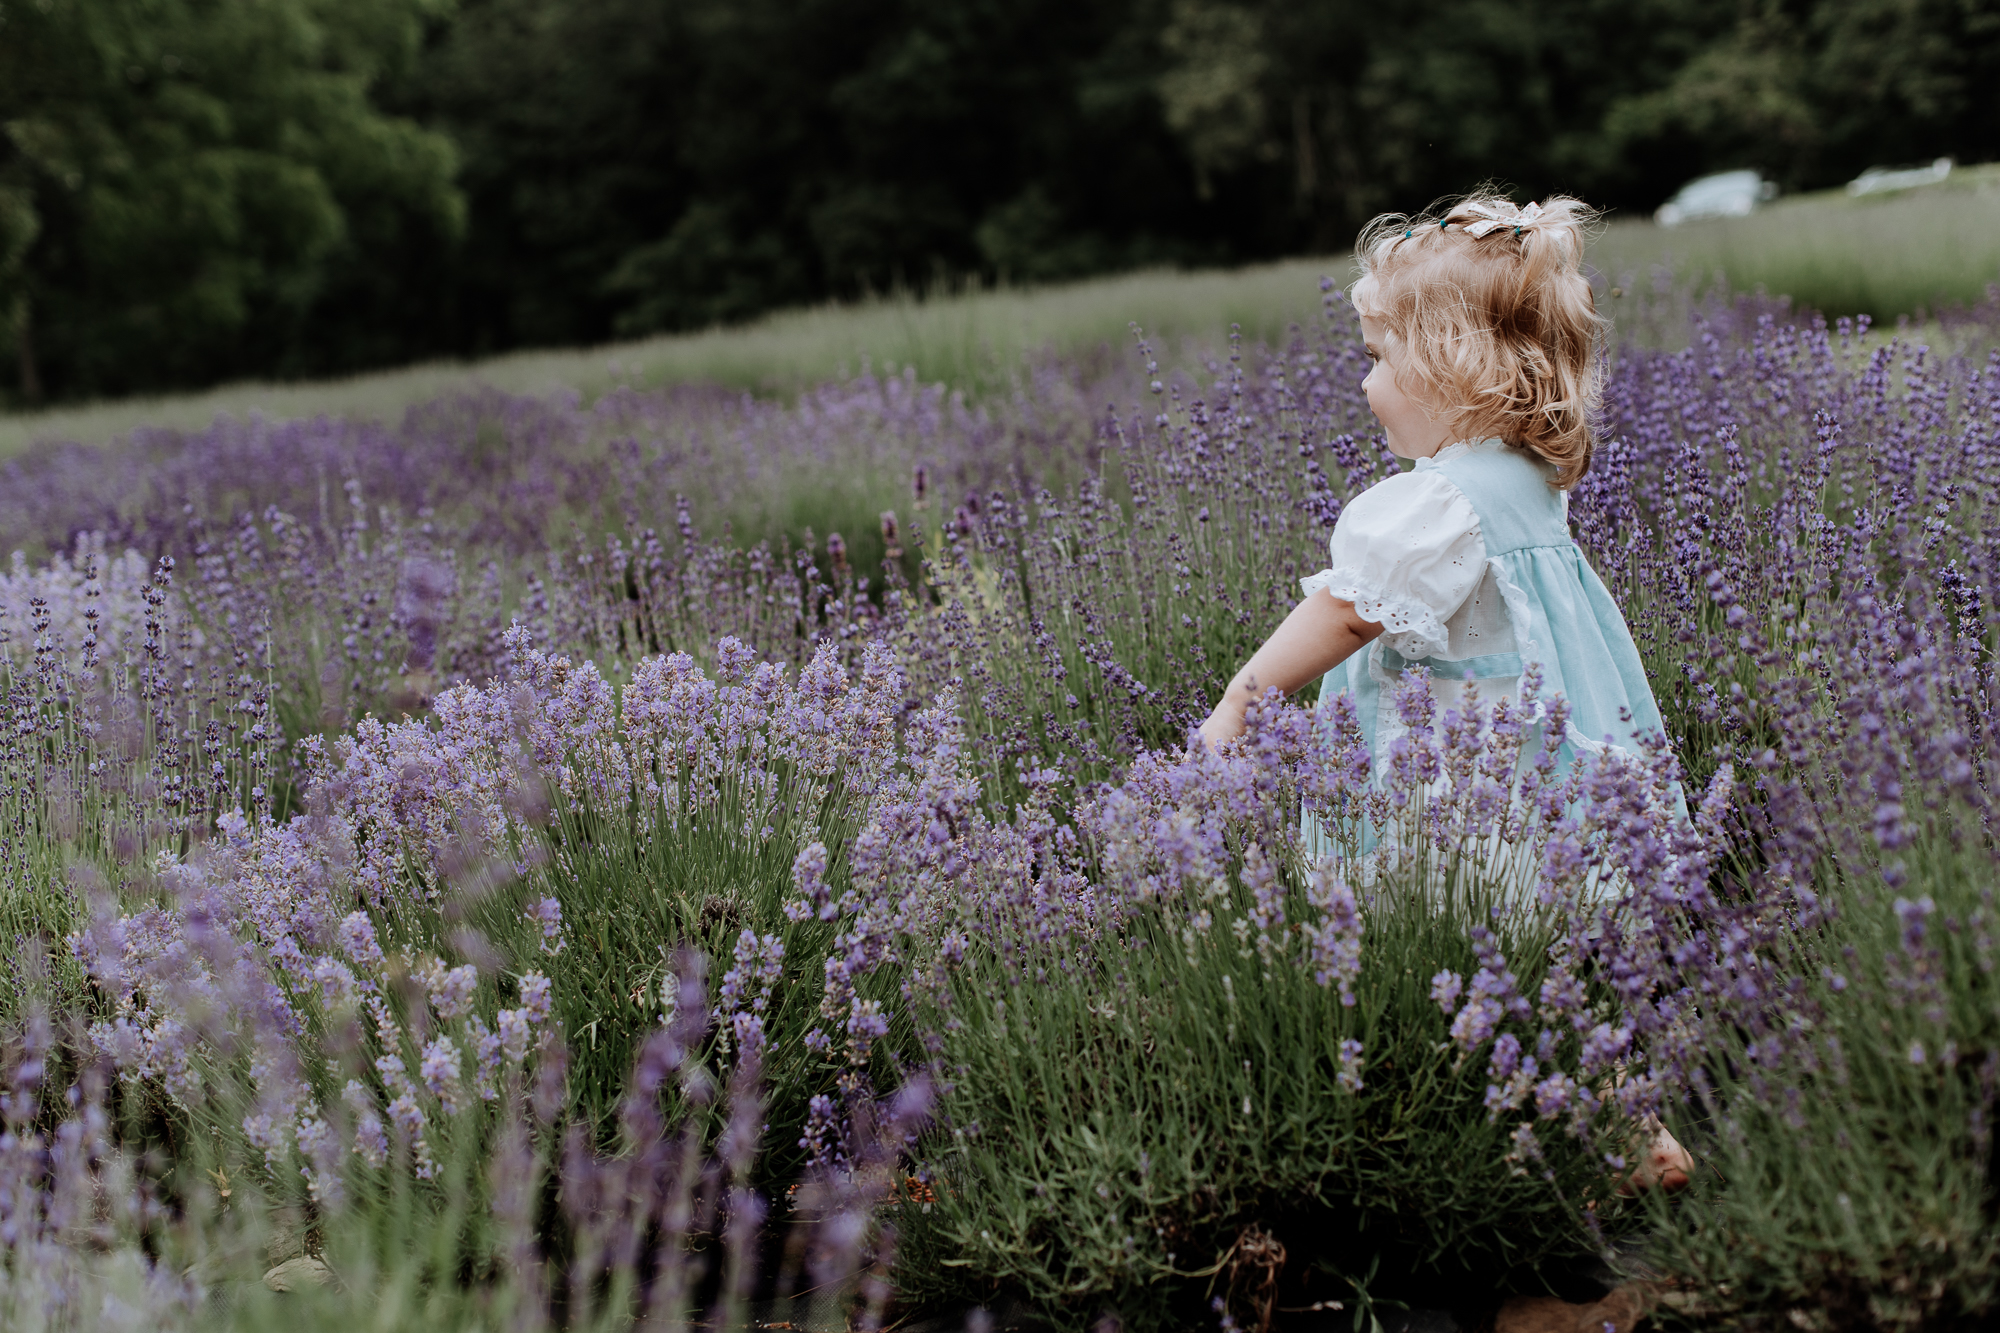 peace-valley-lavender-farm-natural-philadelphia-photography-3